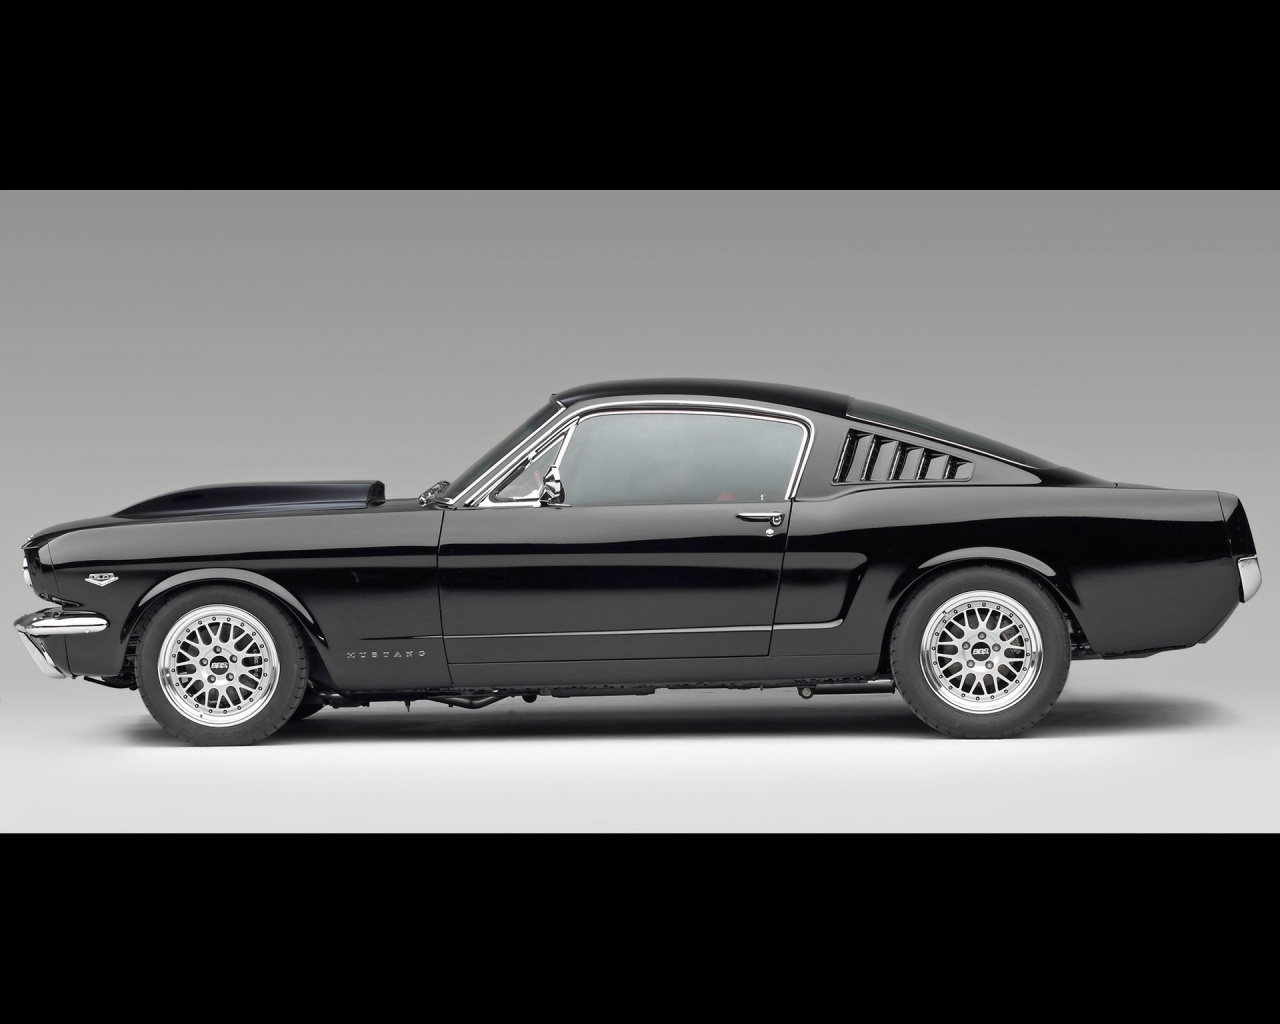 Ford mustang 65 wallpaper